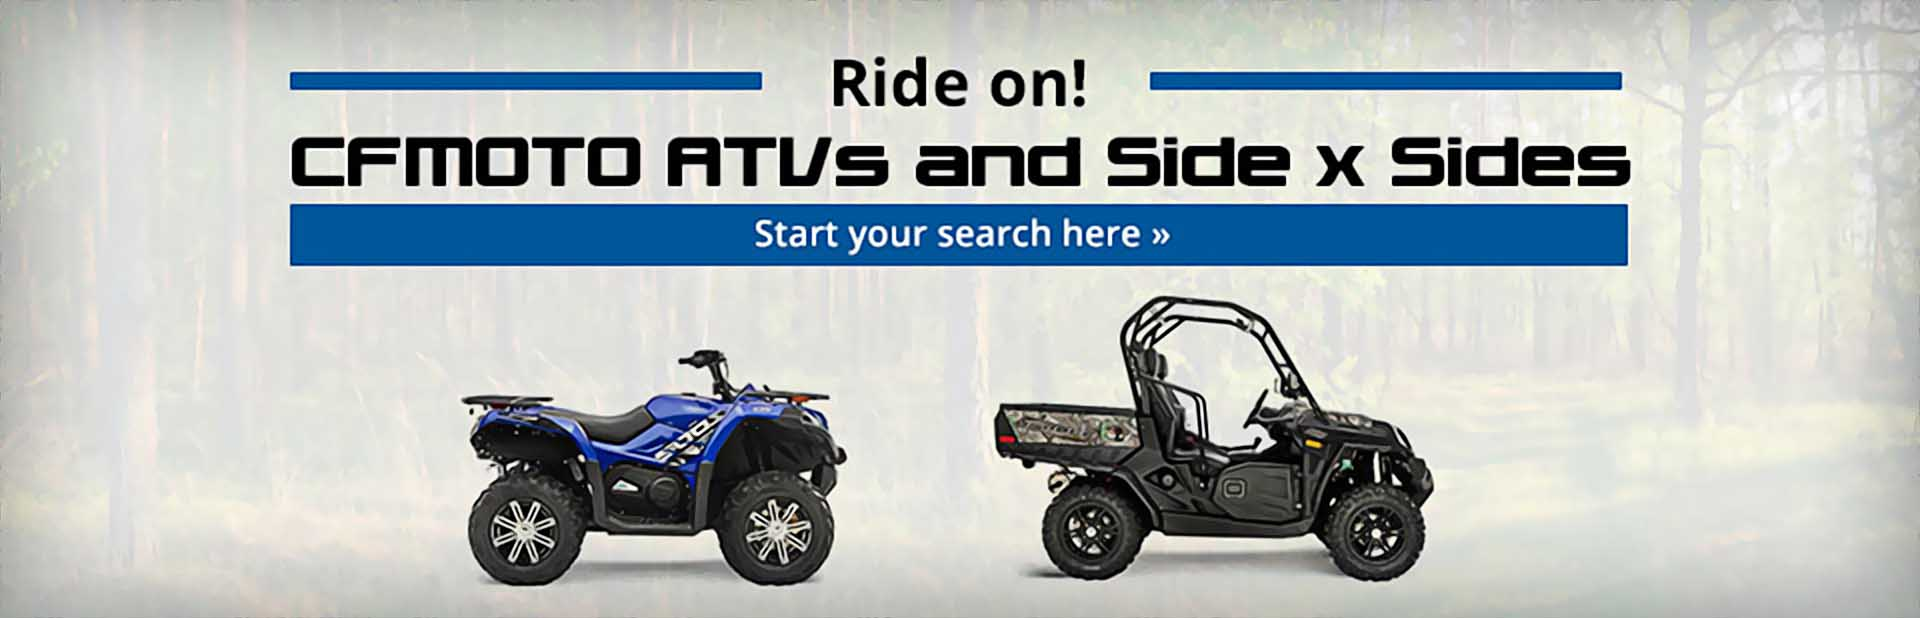 CFMOTO ATVs and Side x Sides: Click here to view the models.